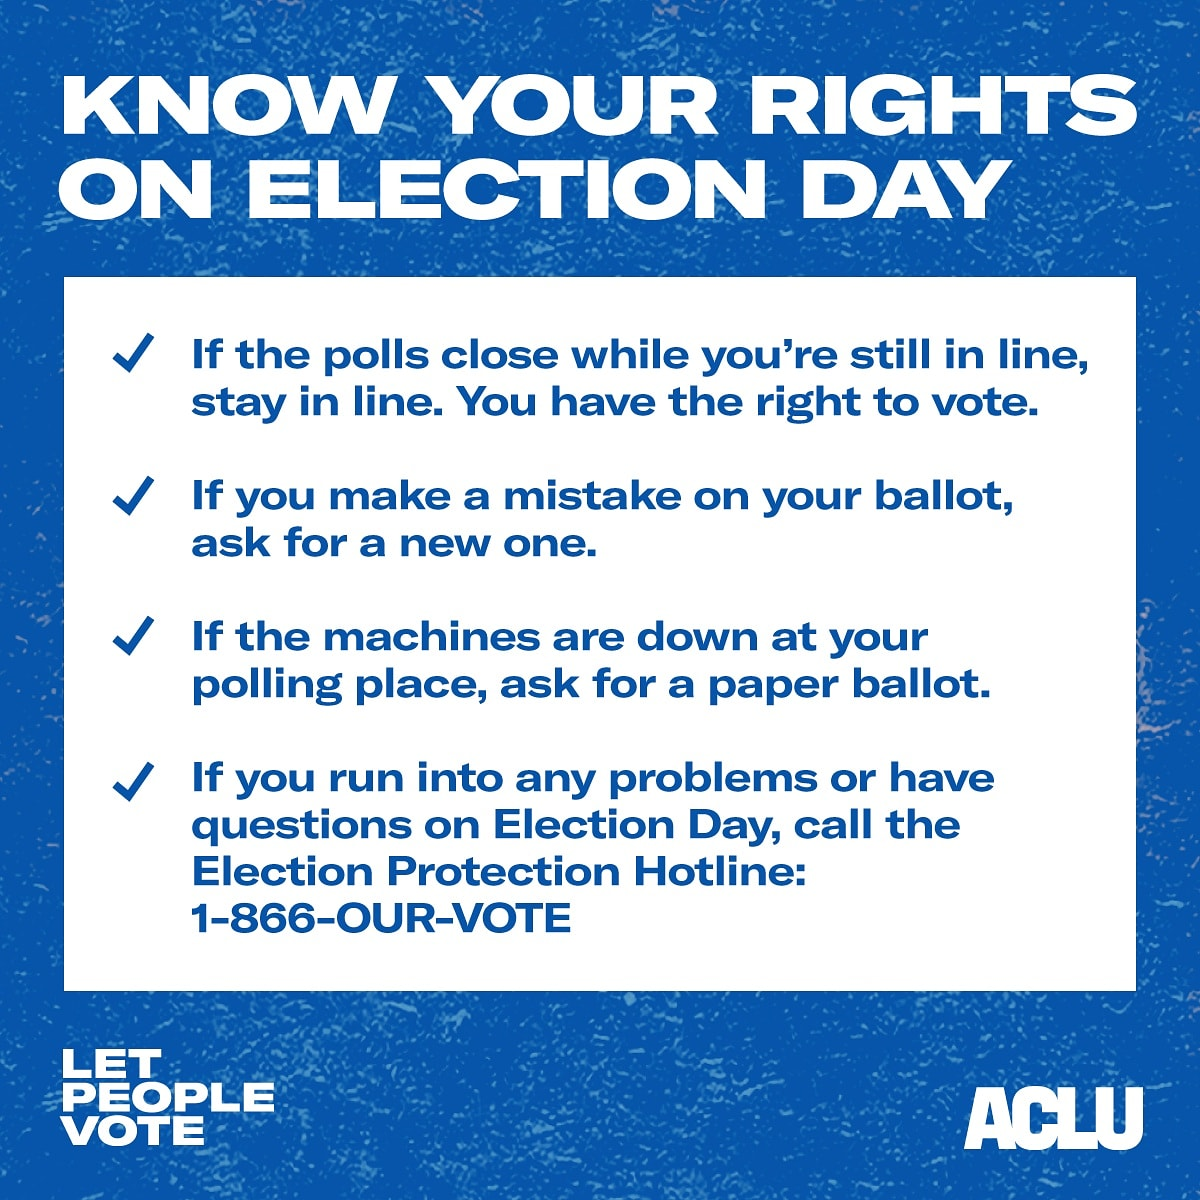 ELECTION DAY IS A WEEK AWAY! KNOW YOUR VOTING RIGHTS! Go to aclu.org/vote-now! @ACLU